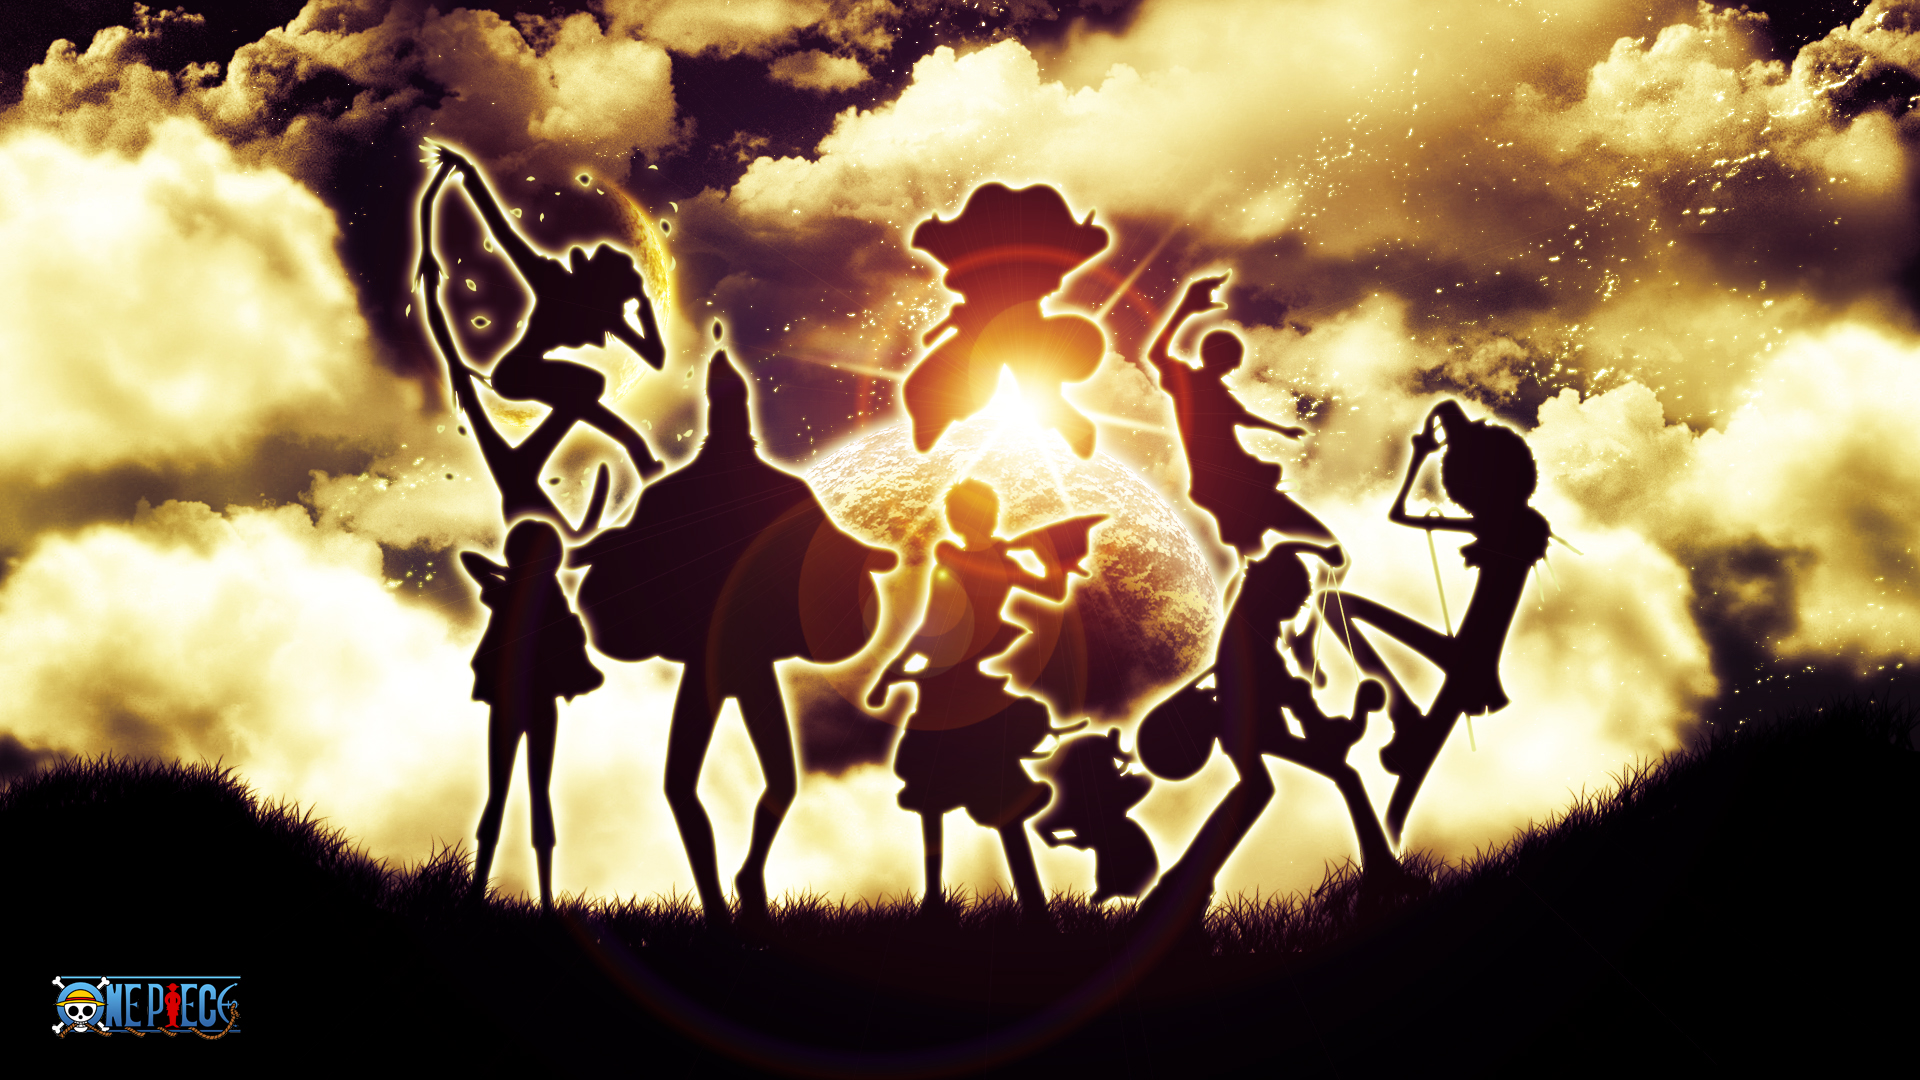 Hd wallpaper one piece - One Piece Hd Wallpapers